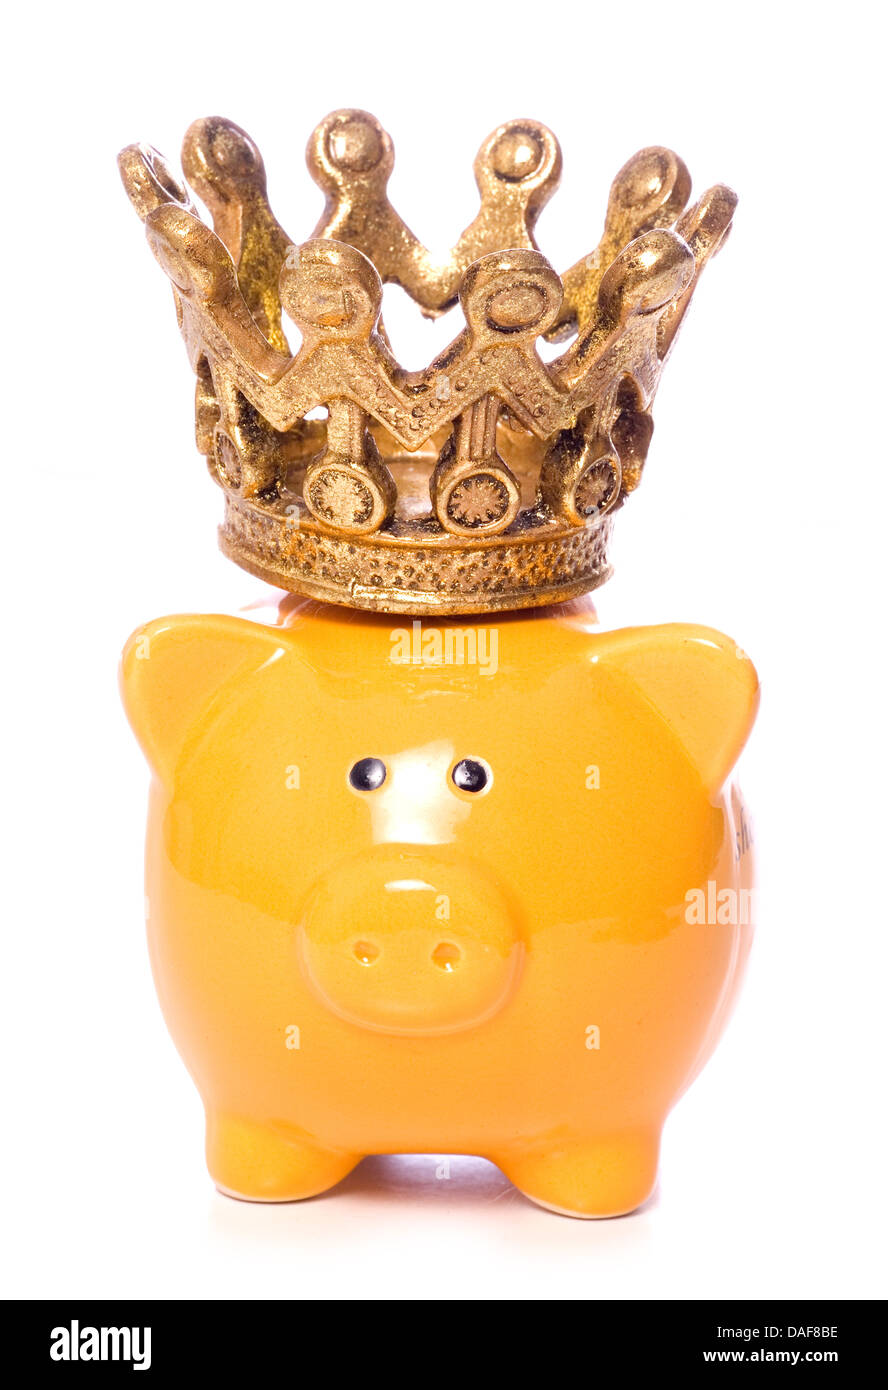 Piggybank with crown studio cutout - Stock Image